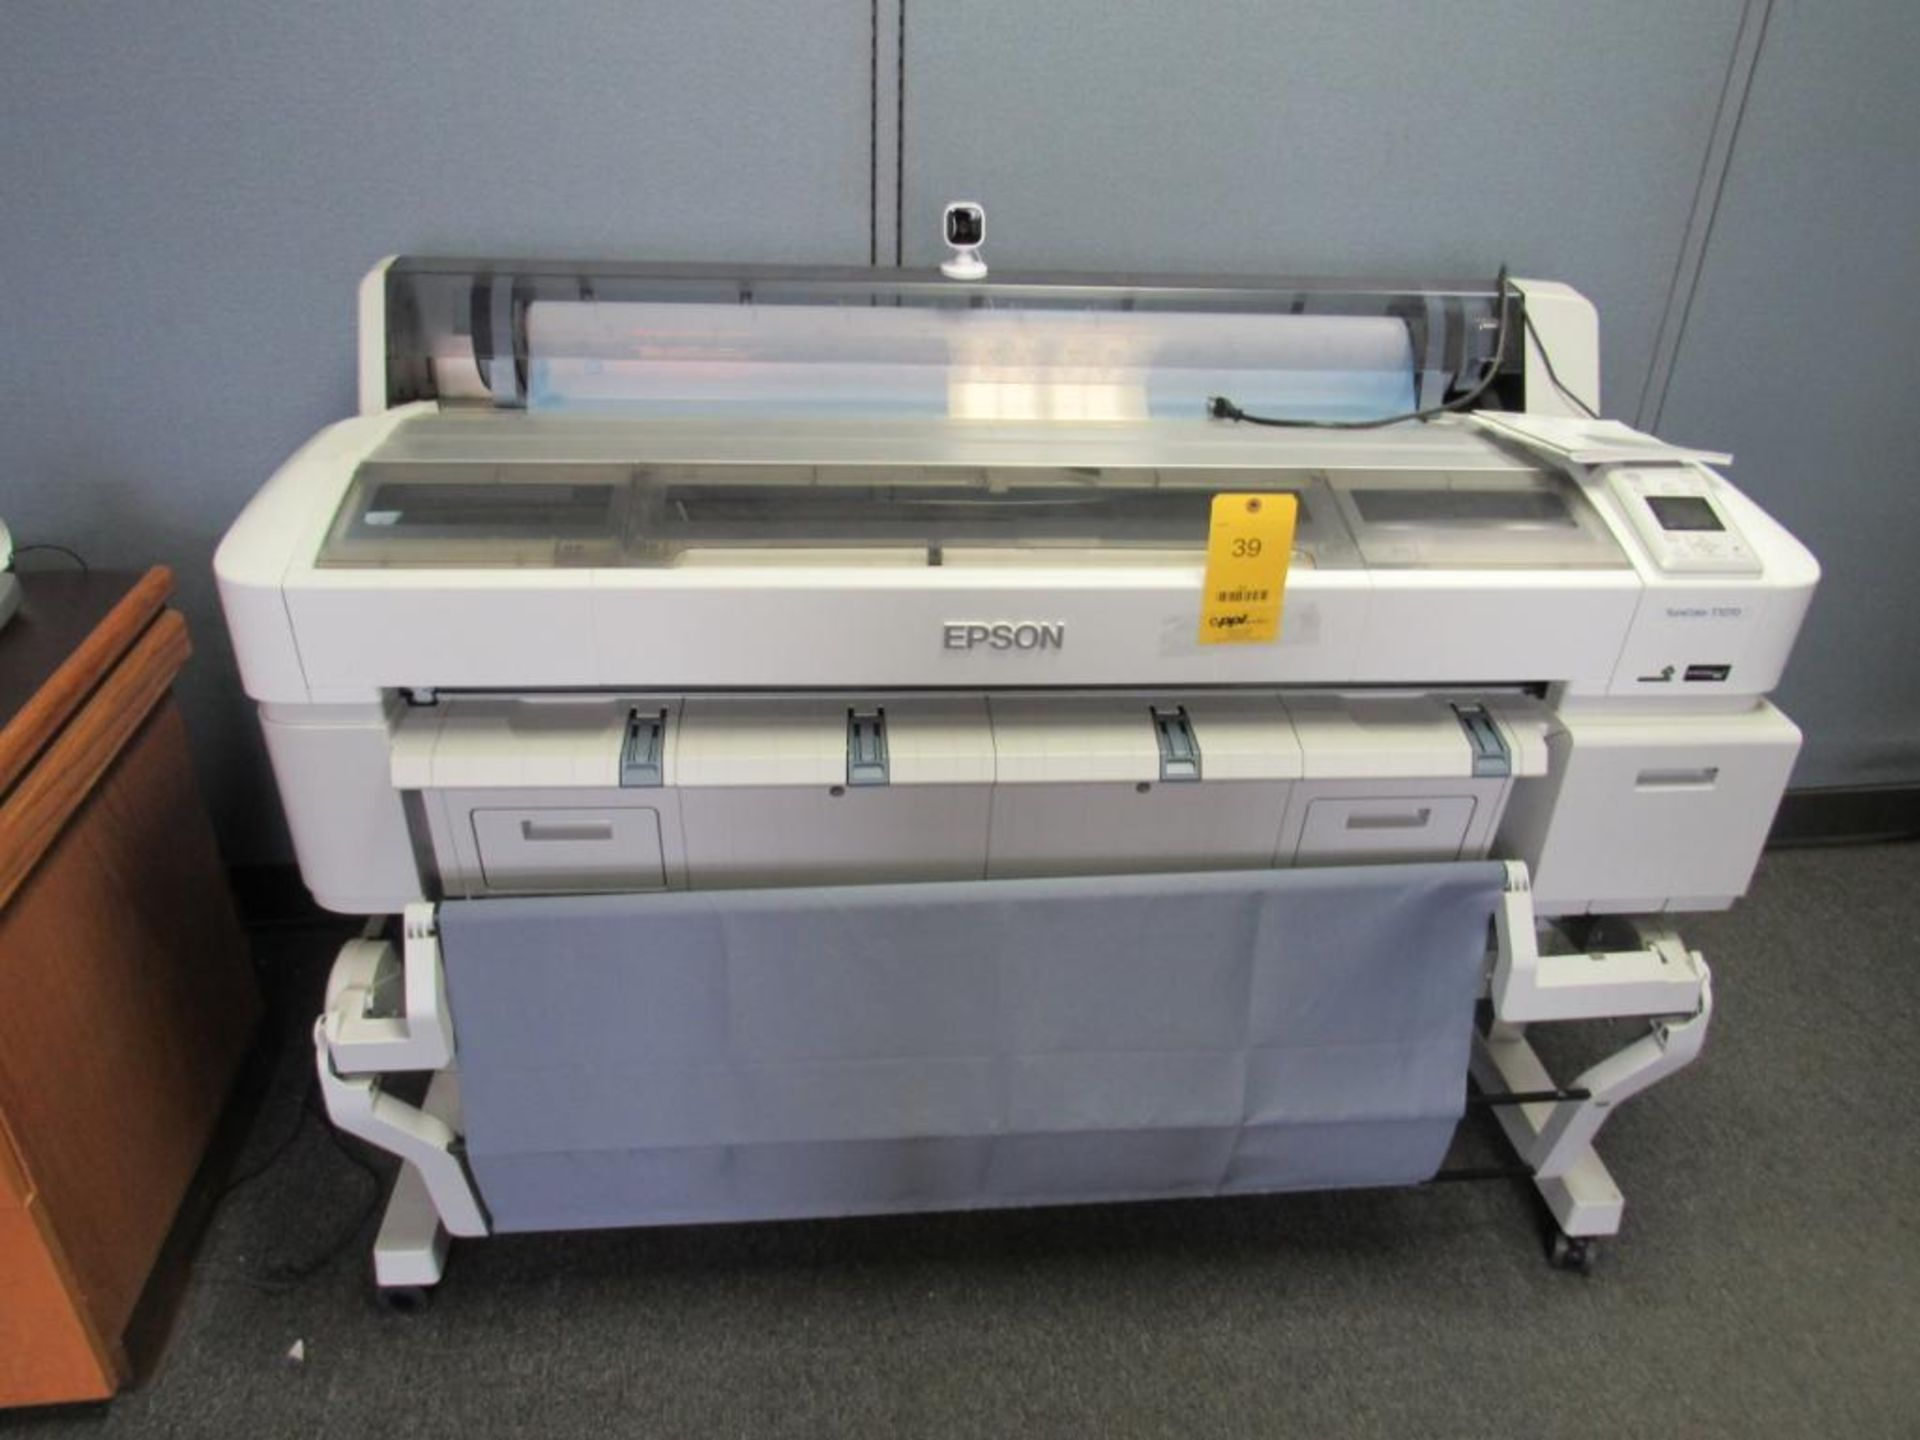 Epson Surecolor T7270 Wide Format Printer, 5-Color, 44 in. Wide, S/N U8CE001276